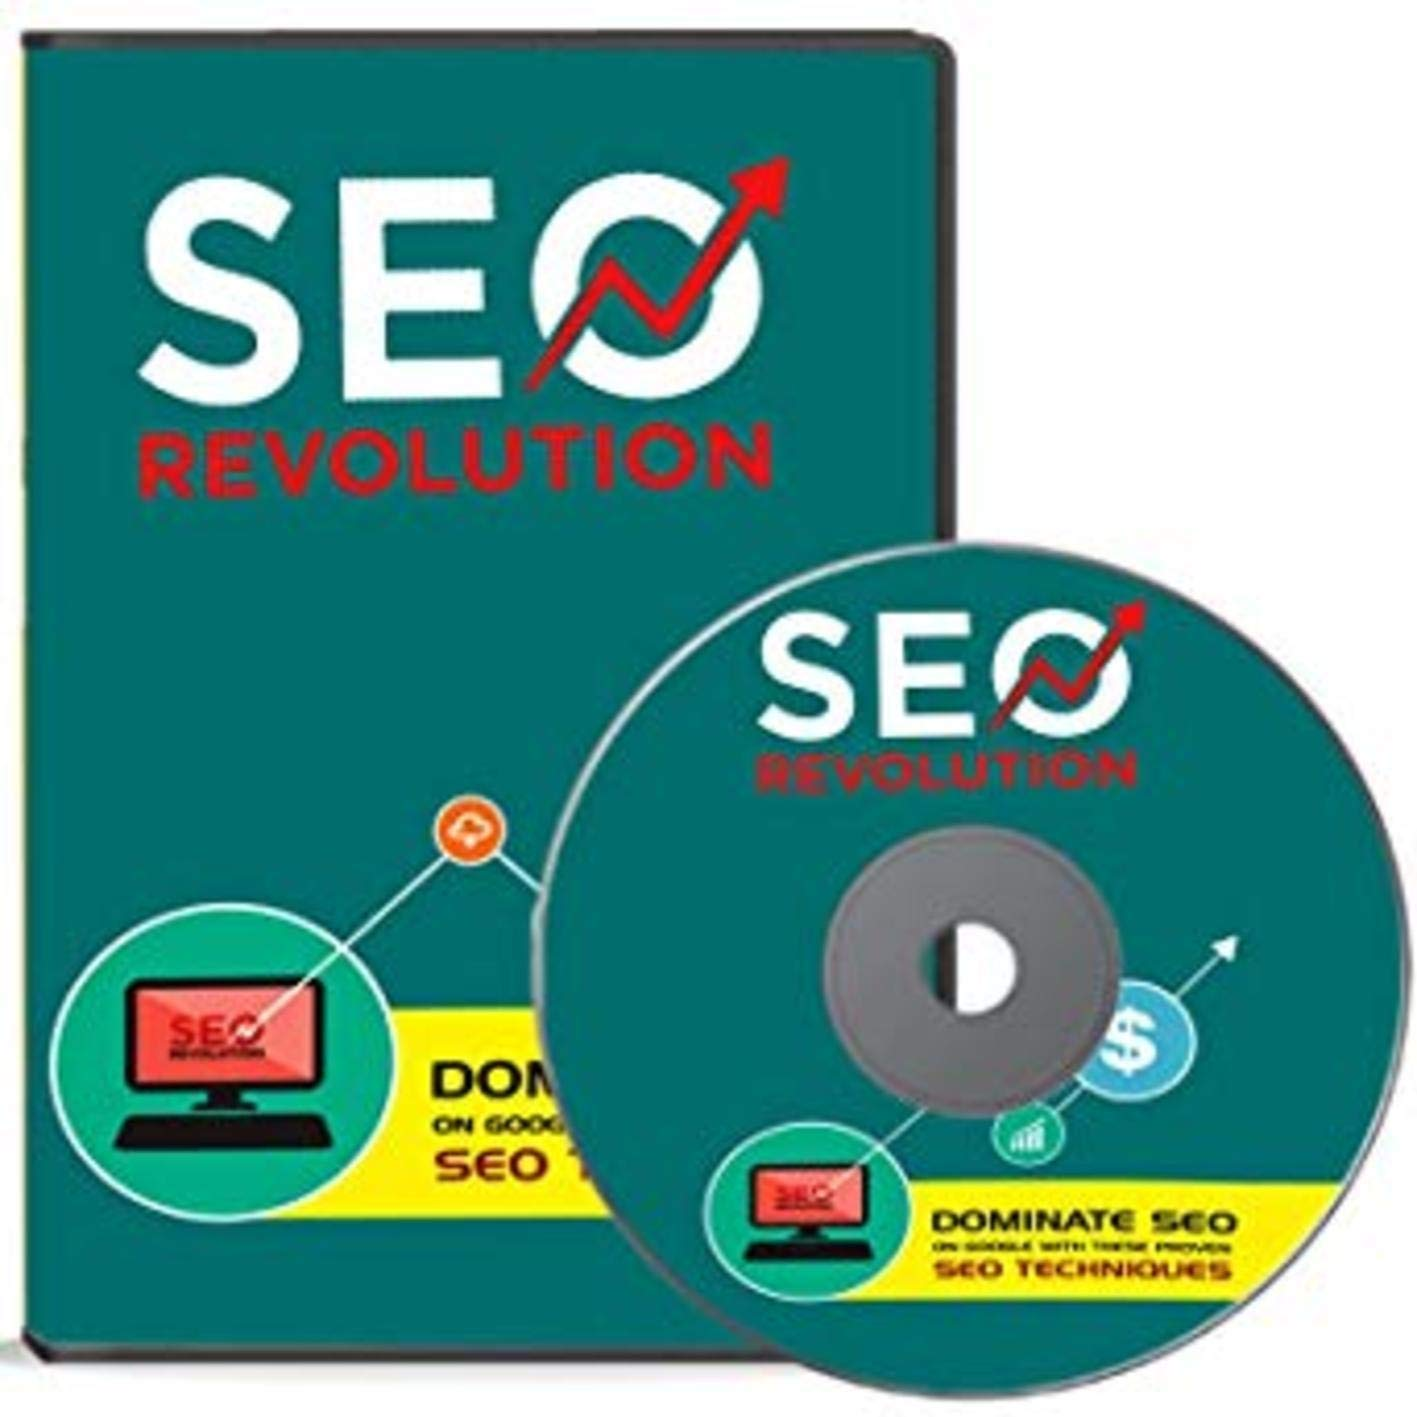 SEO Revolution Video Course by Get Digital World